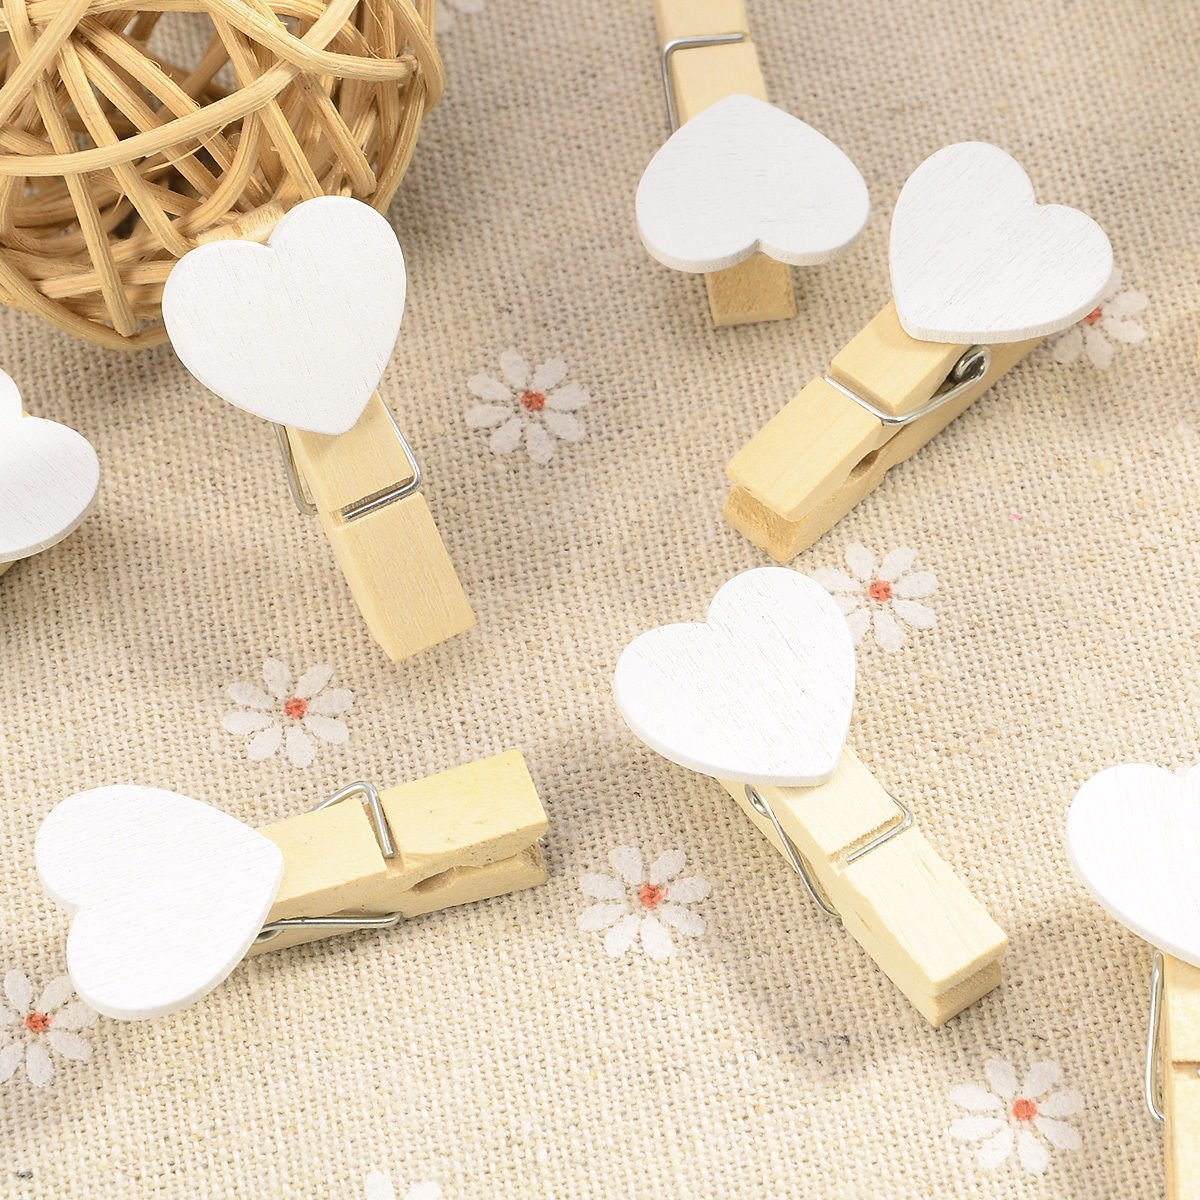 Office & School Supplies 40pcs Love Heart Mini Wooden Photo Paper Clips Pegs For Photos Wedding Decor Craft-white